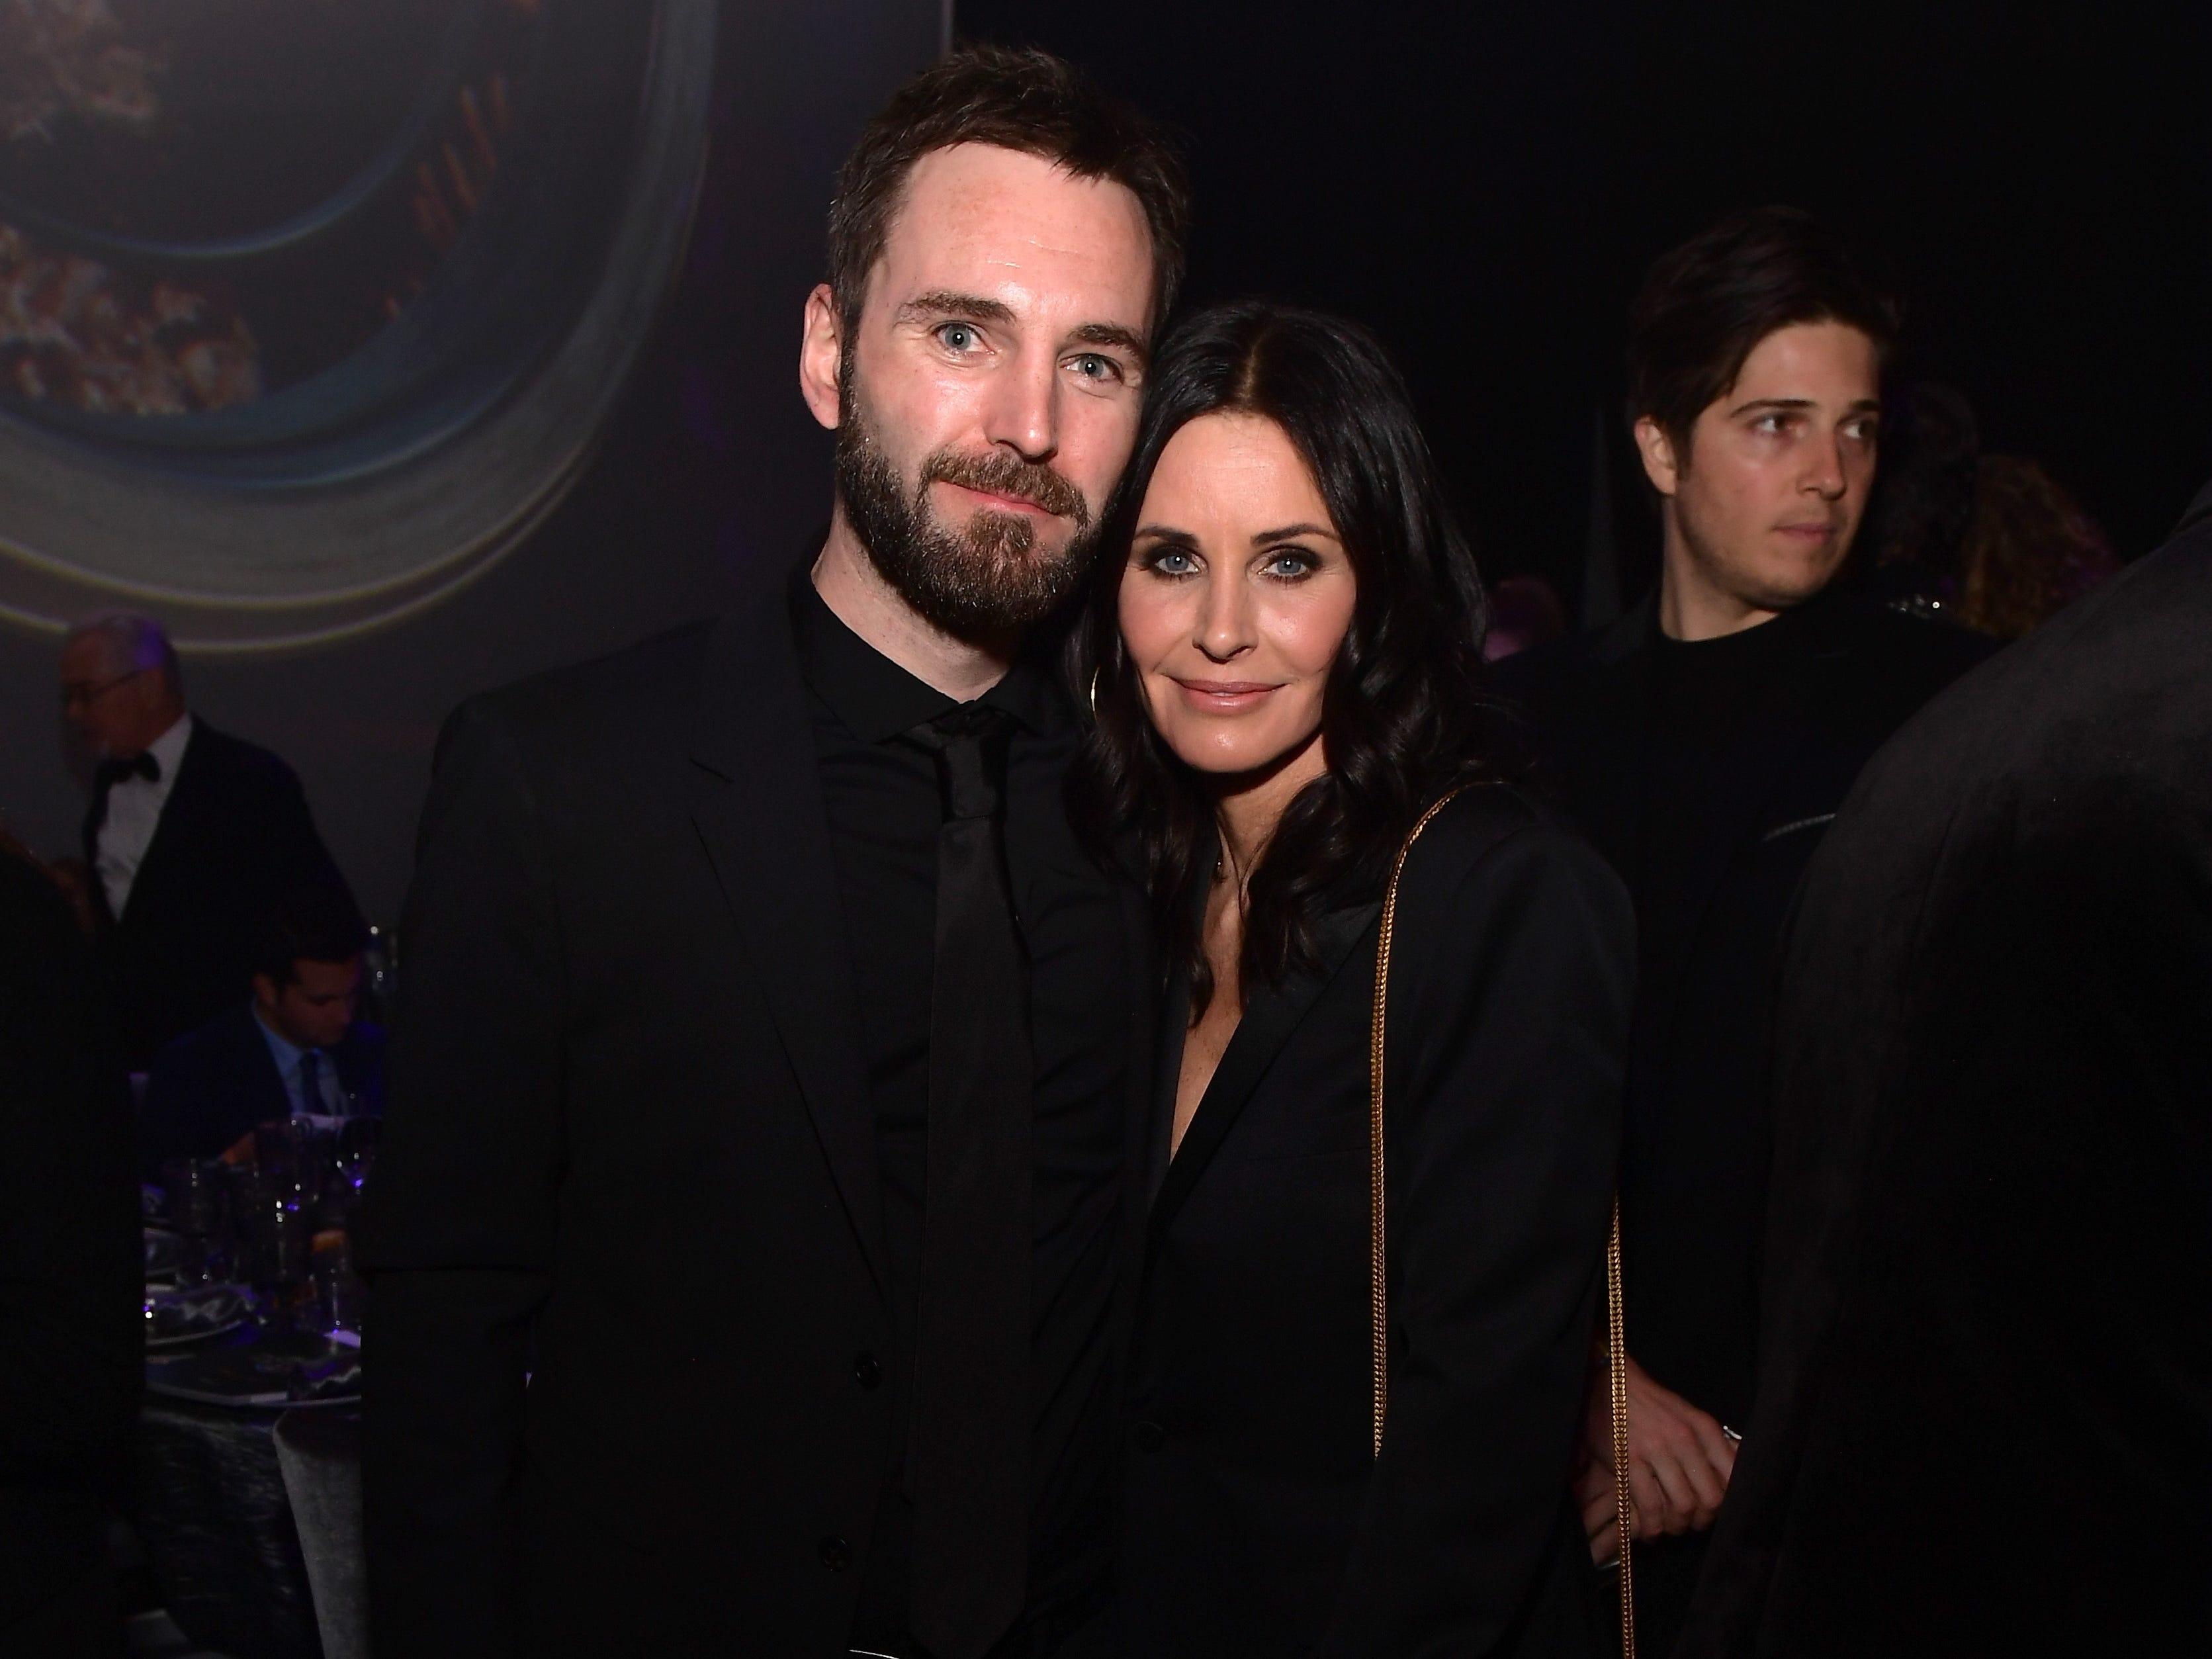 BEVERLY HILLS, CA - FEBRUARY 21:  Johnny McDaid (L) and Courteney Cox attend the UCLA IoES honors Barbra Streisand and Gisele Bundchen at the 2019 Hollywood for Science Gala on February 21, 2019 in Beverly Hills, California.  (Photo by Matt Winkelmeyer/Getty Images for UCLA Institute of the Environment & Sustainability) ORG XMIT: 775301825 ORIG FILE ID: 1126665183